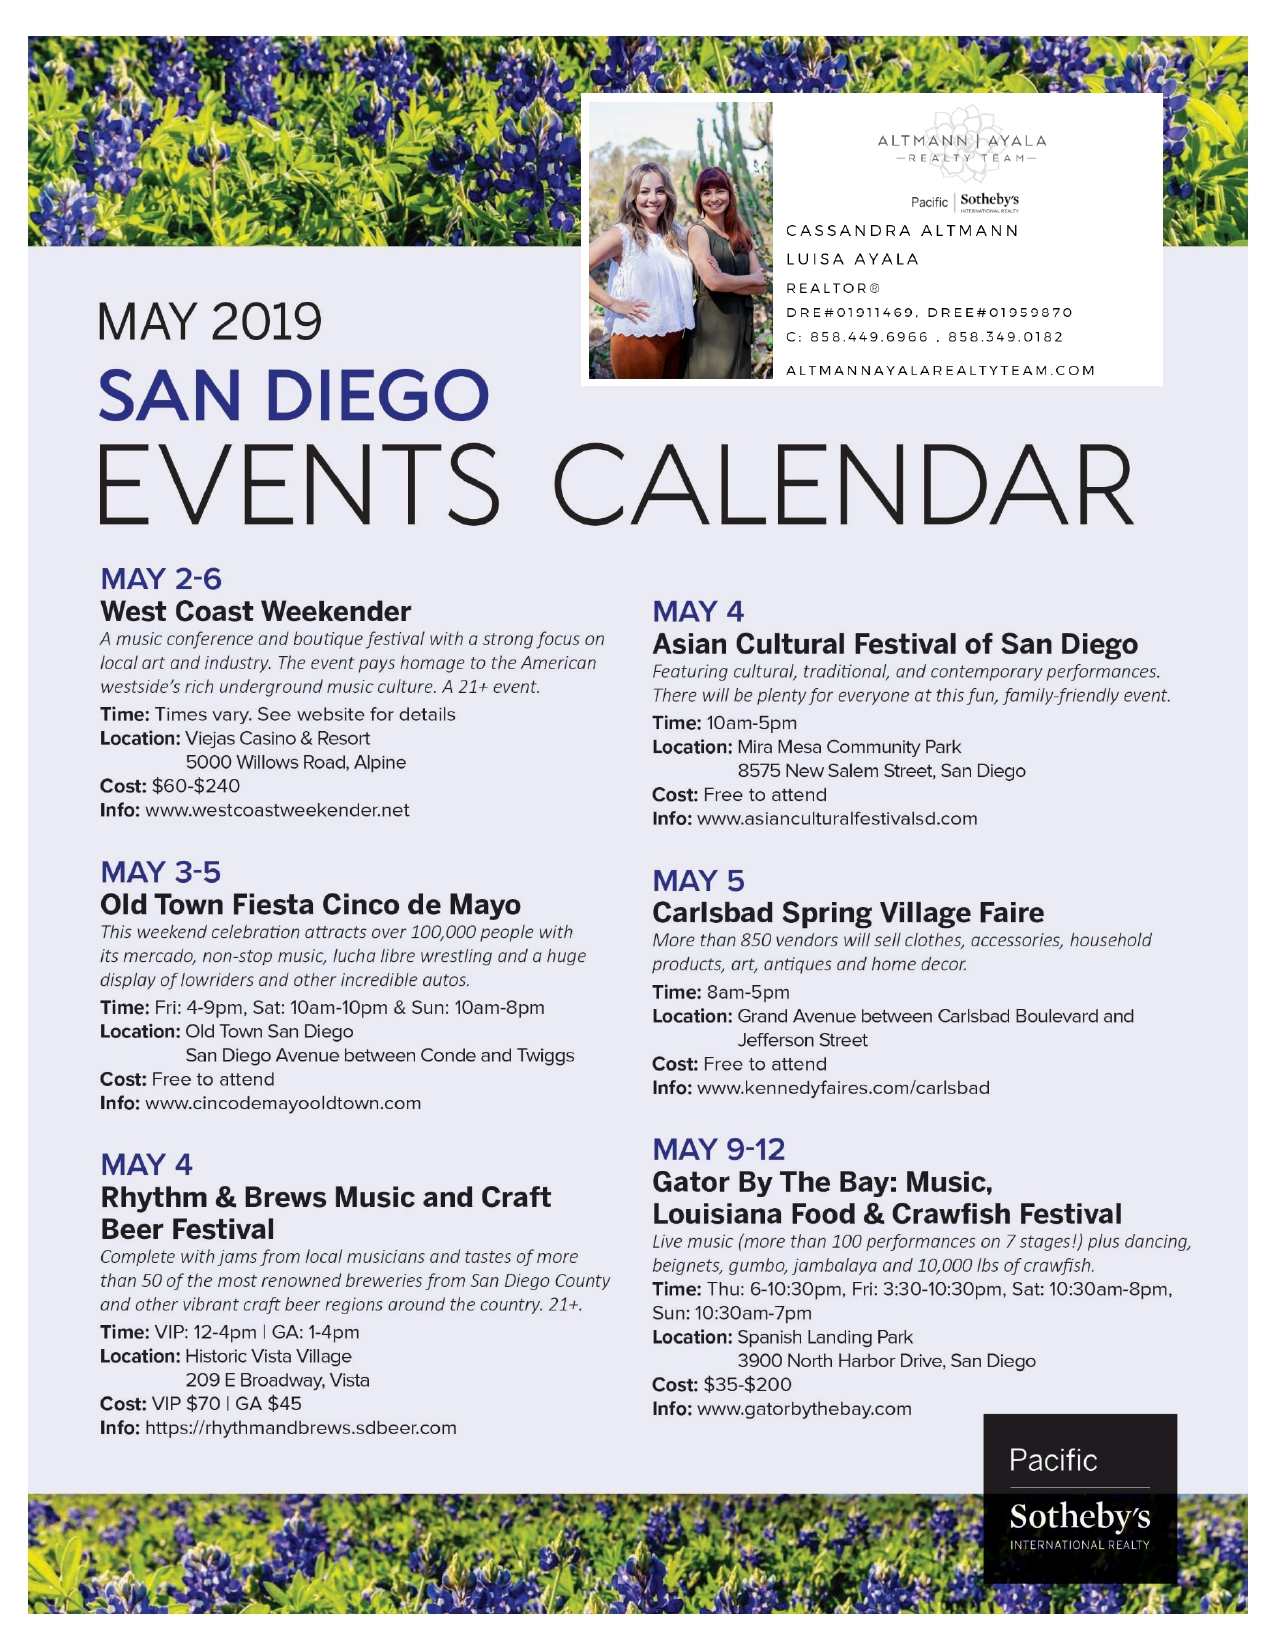 May 2019 San Diego Events Calendar